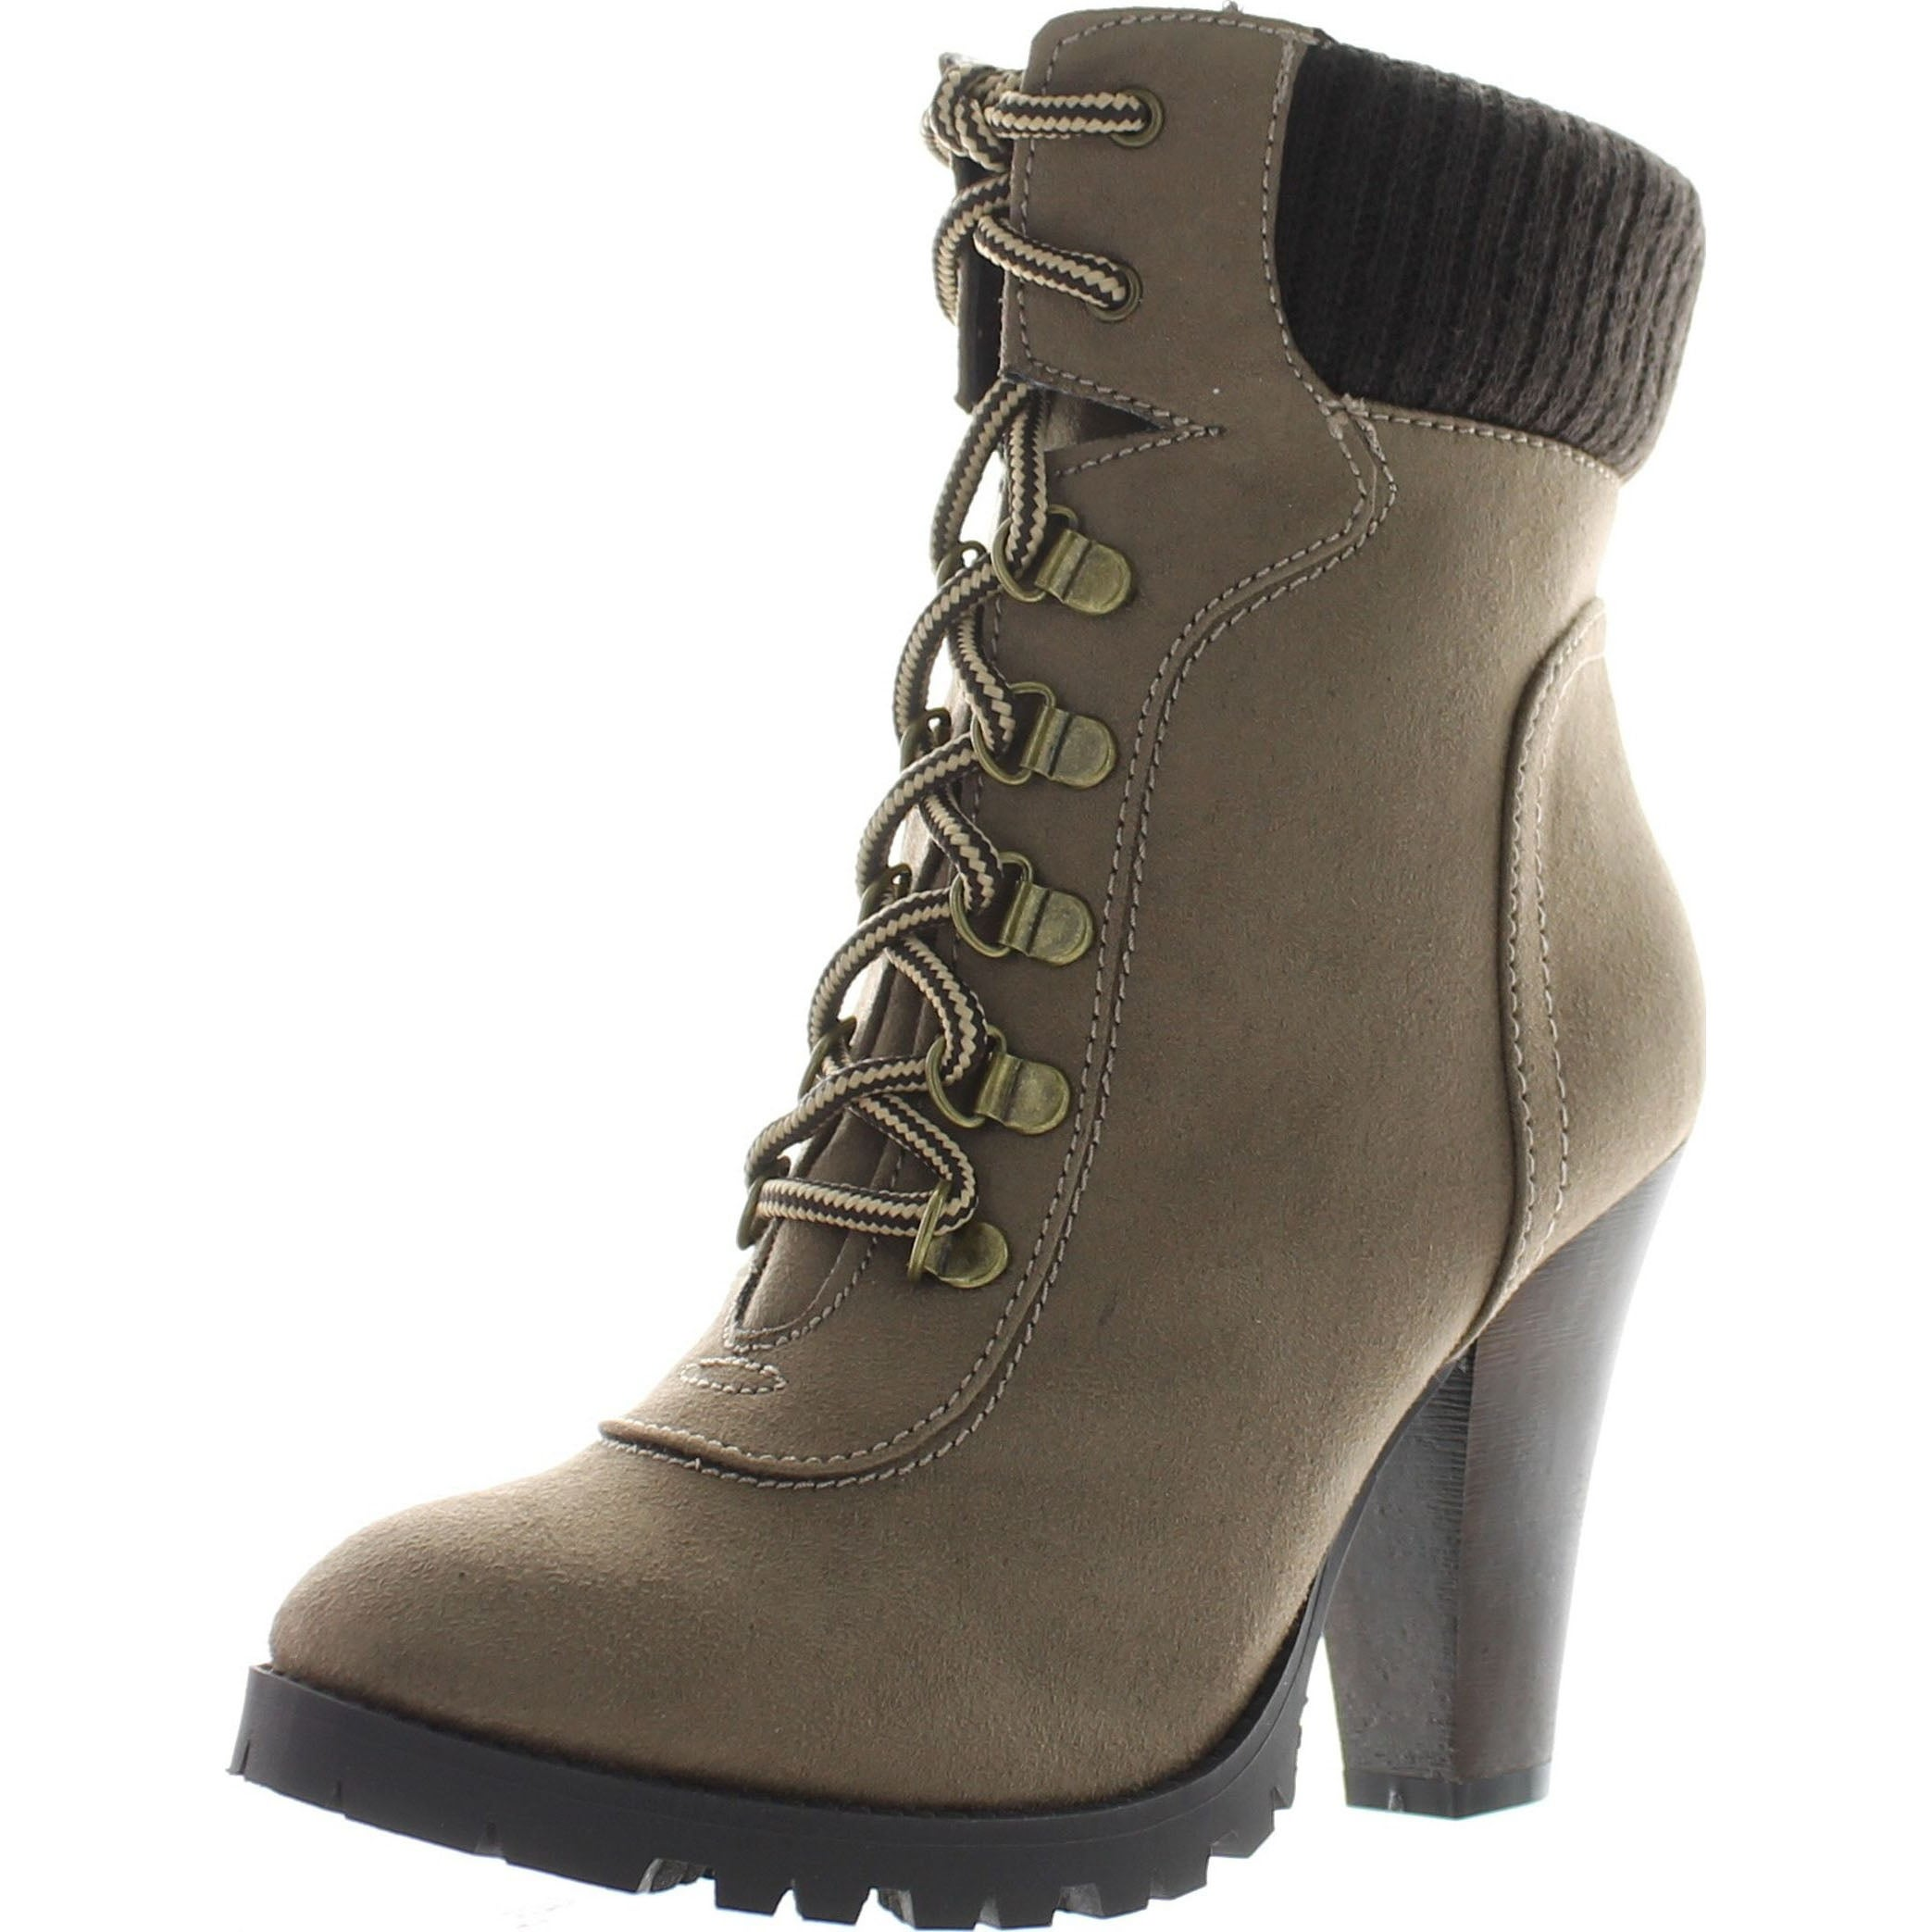 2368eb382b Buy Wedge Women's Boots Online at Overstock | Our Best Women's Shoes Deals